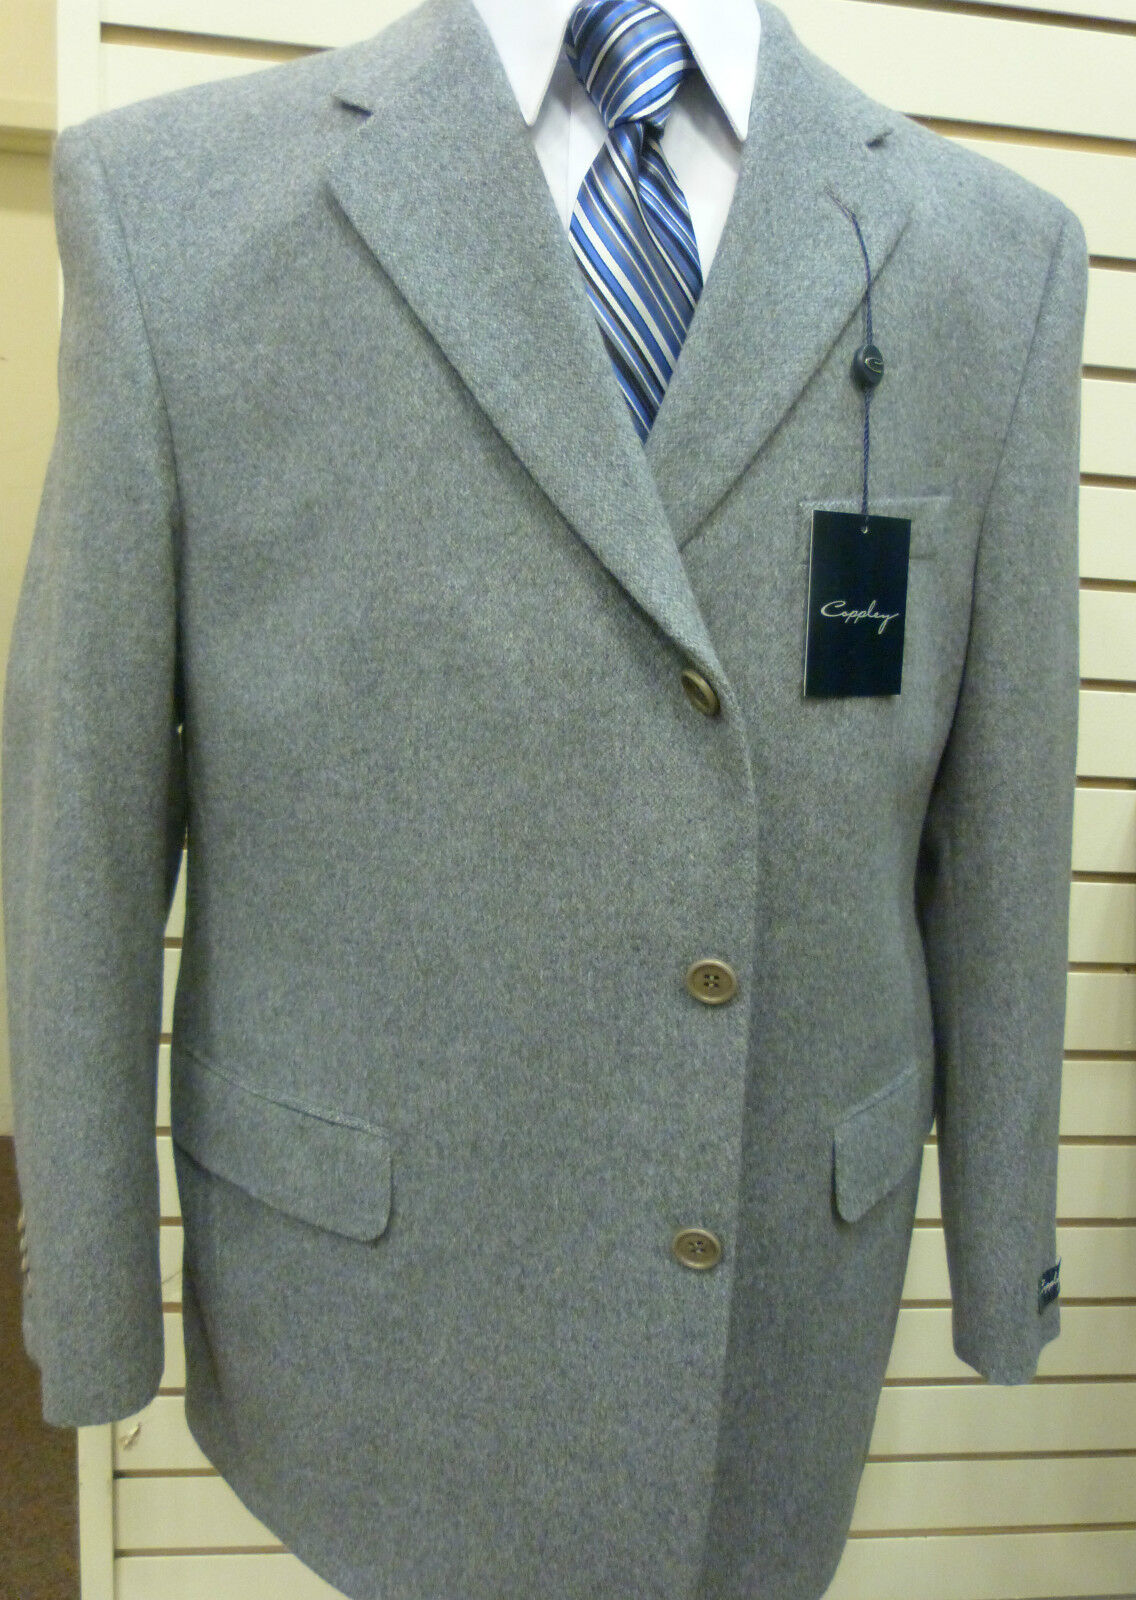 Coppley Three Button Sport Coat, Wool/Angora, Made in Canada,42 L,NWT